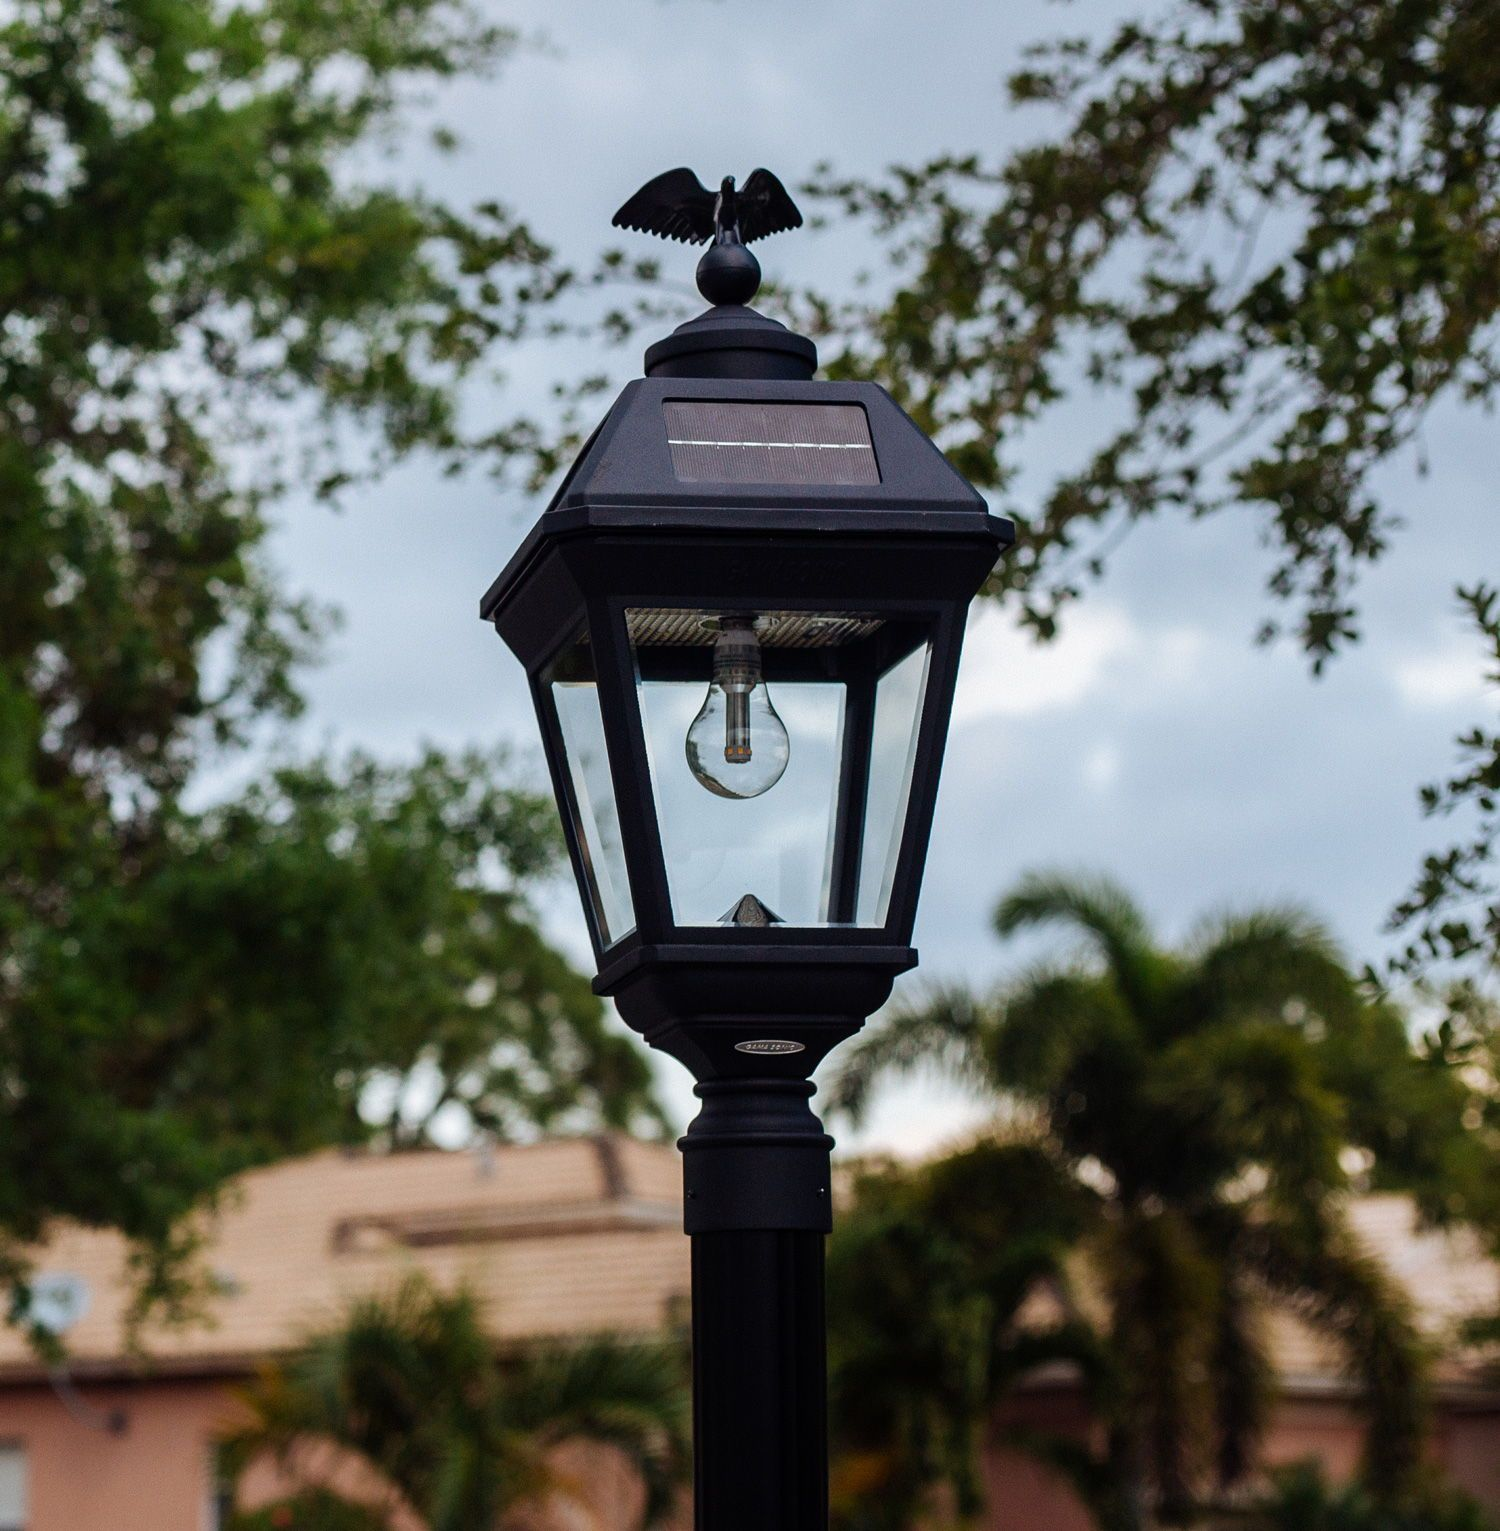 Imperial Bulb Solar Lamp 3 Pole Mount With Gs Solar Led Light Bulb Gs 97b F Solar Lamp Post Solar Led Lights Solar Lamp